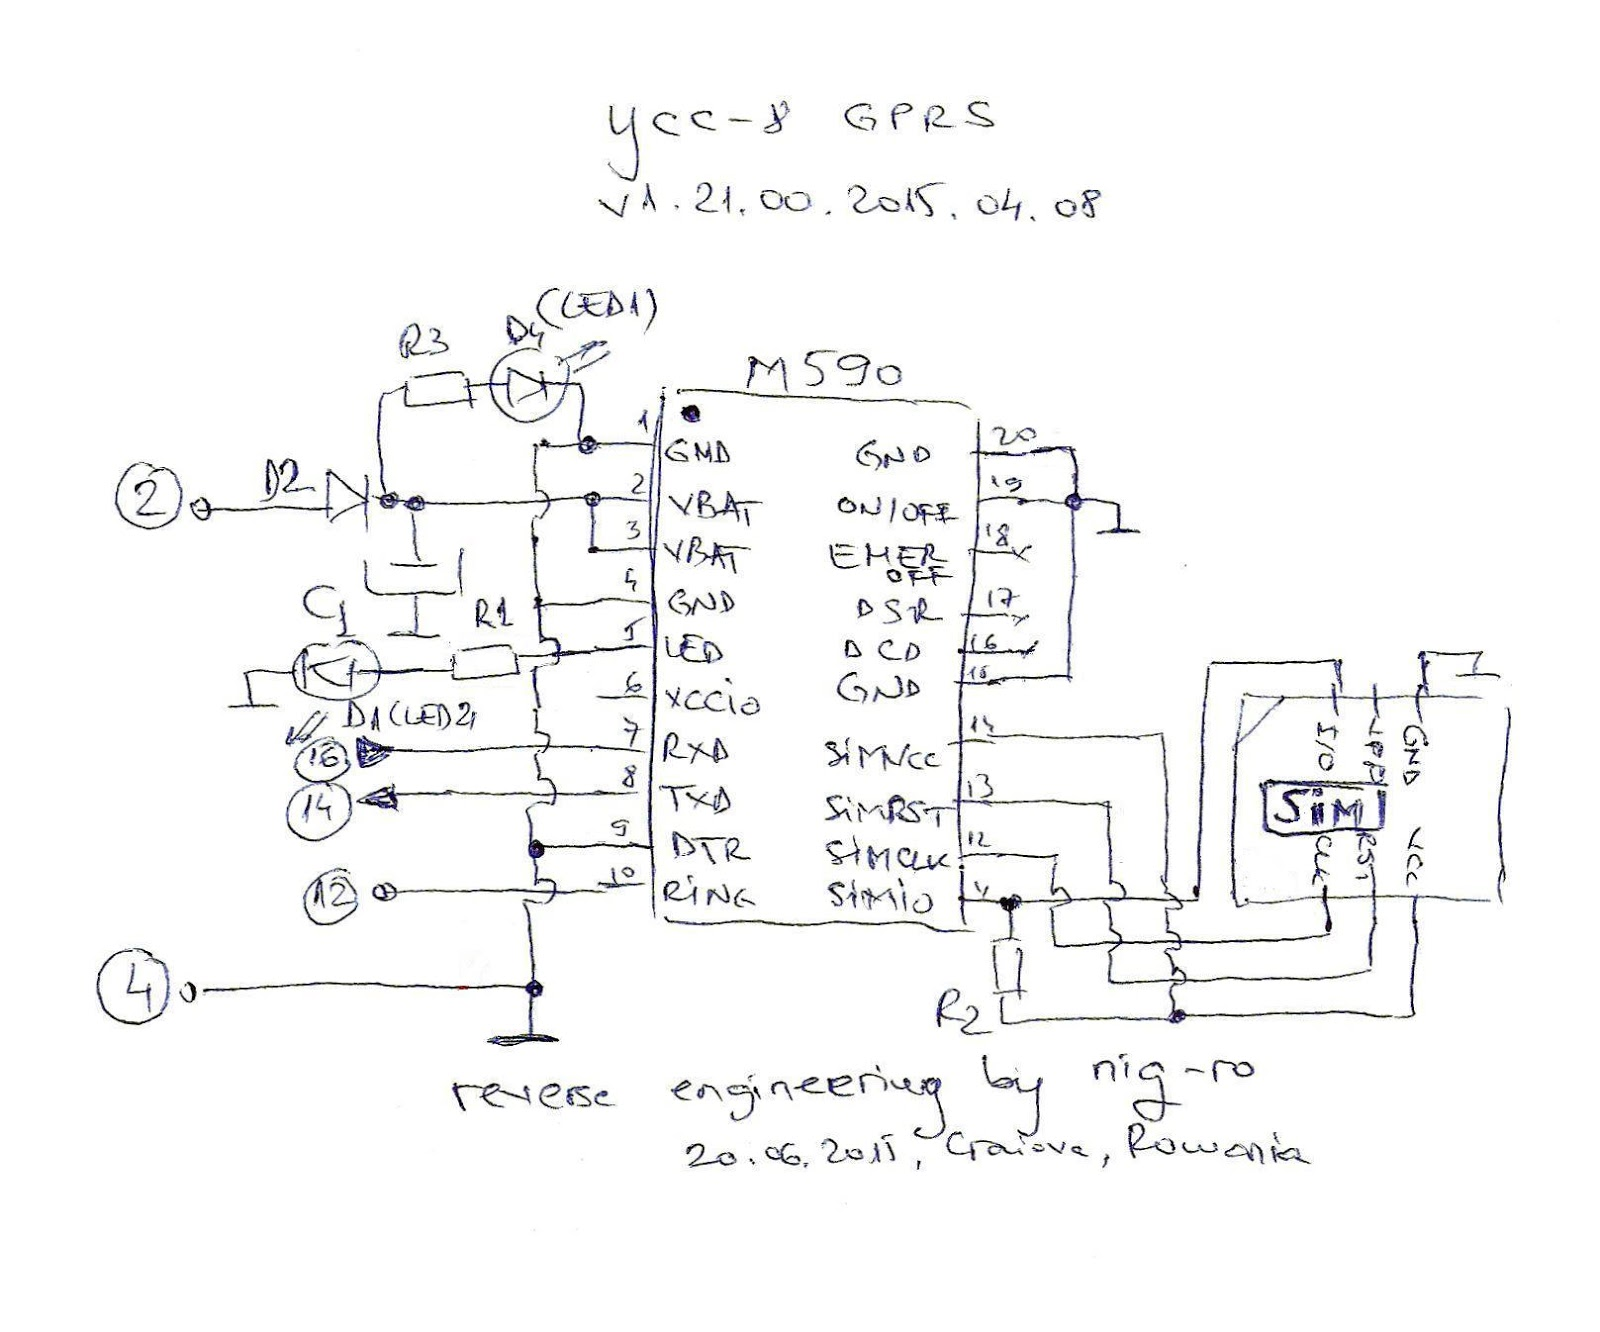 hight resolution of wrg 2570 lexus rx300 wiring diagram cpu pinout and is clear is a simplified